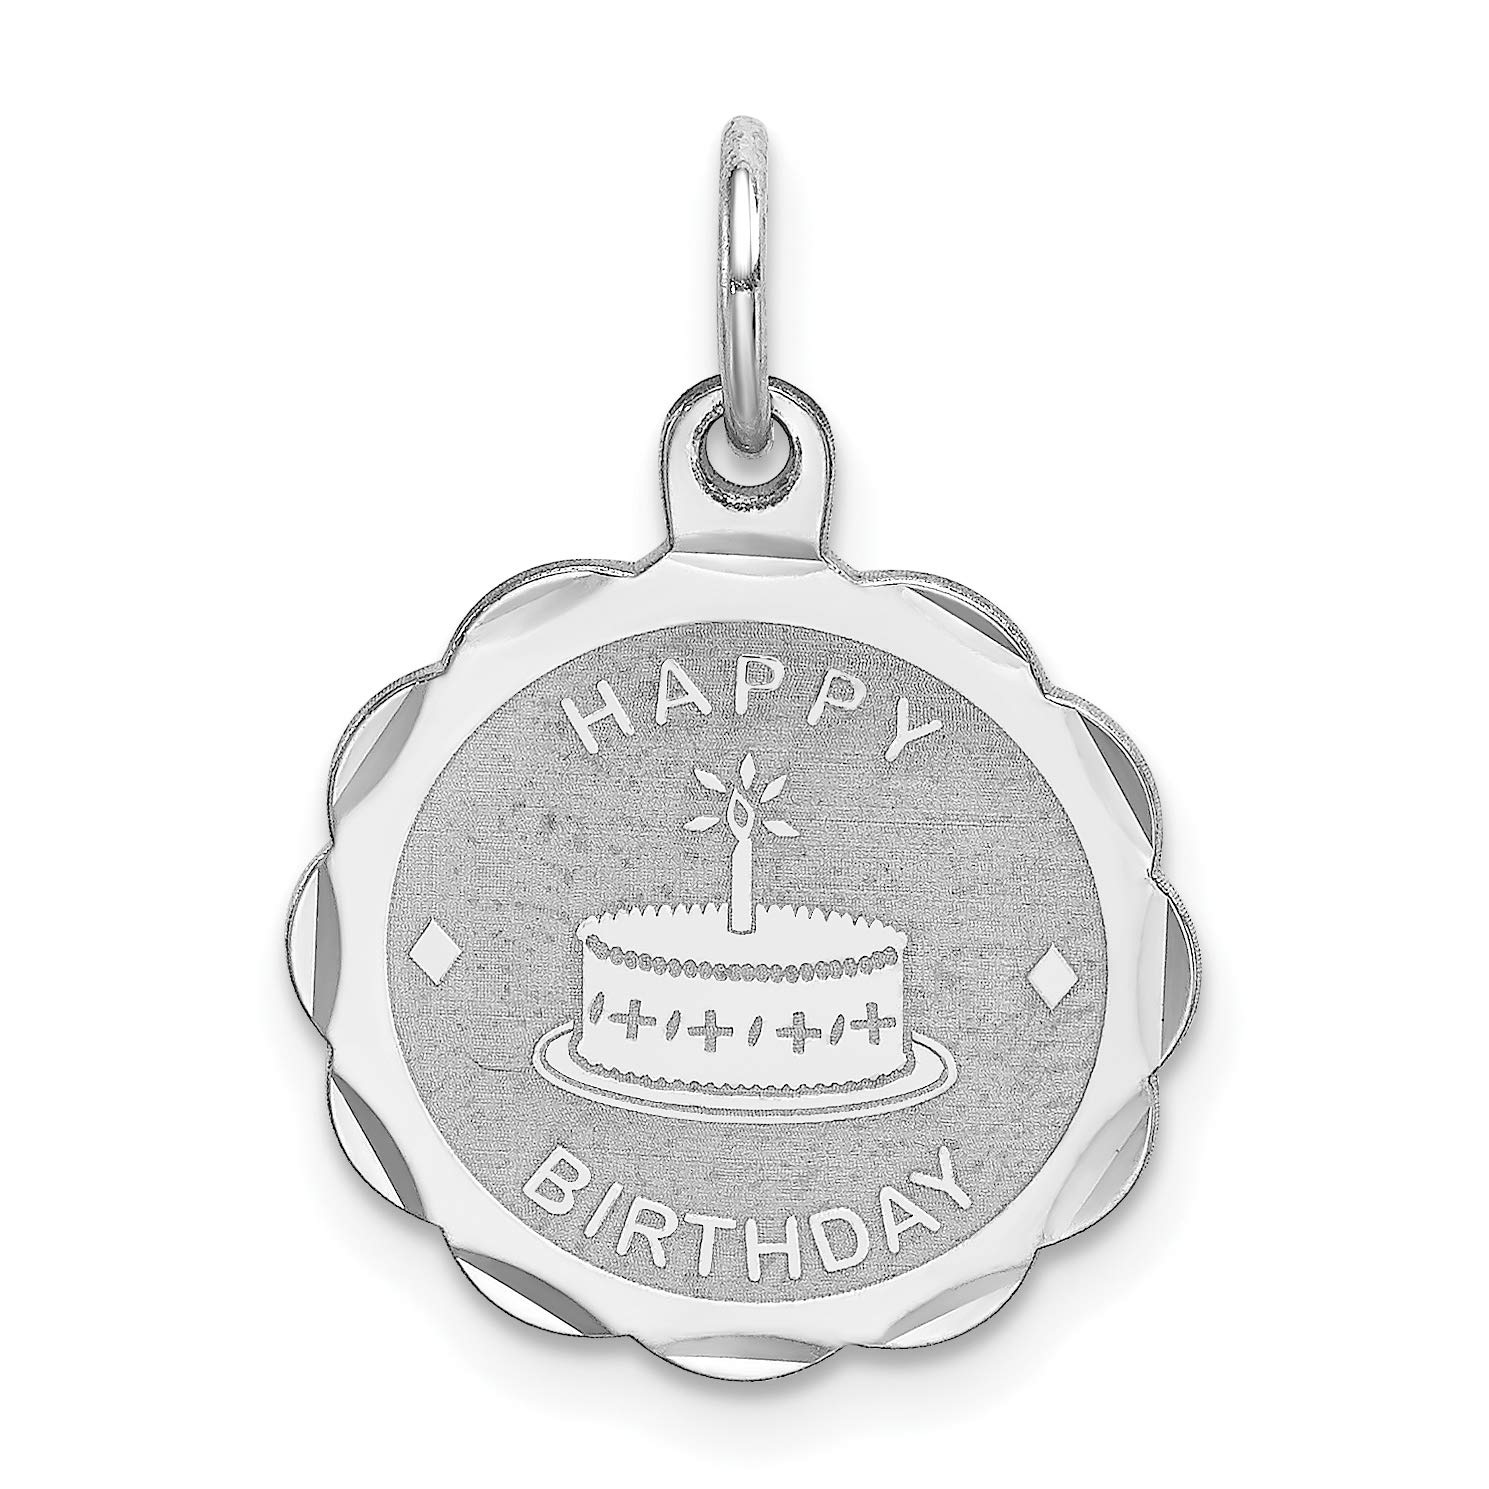 Happy Birthday Words and Cake on Round Charm in 925 Sterling Silver 22x15mm